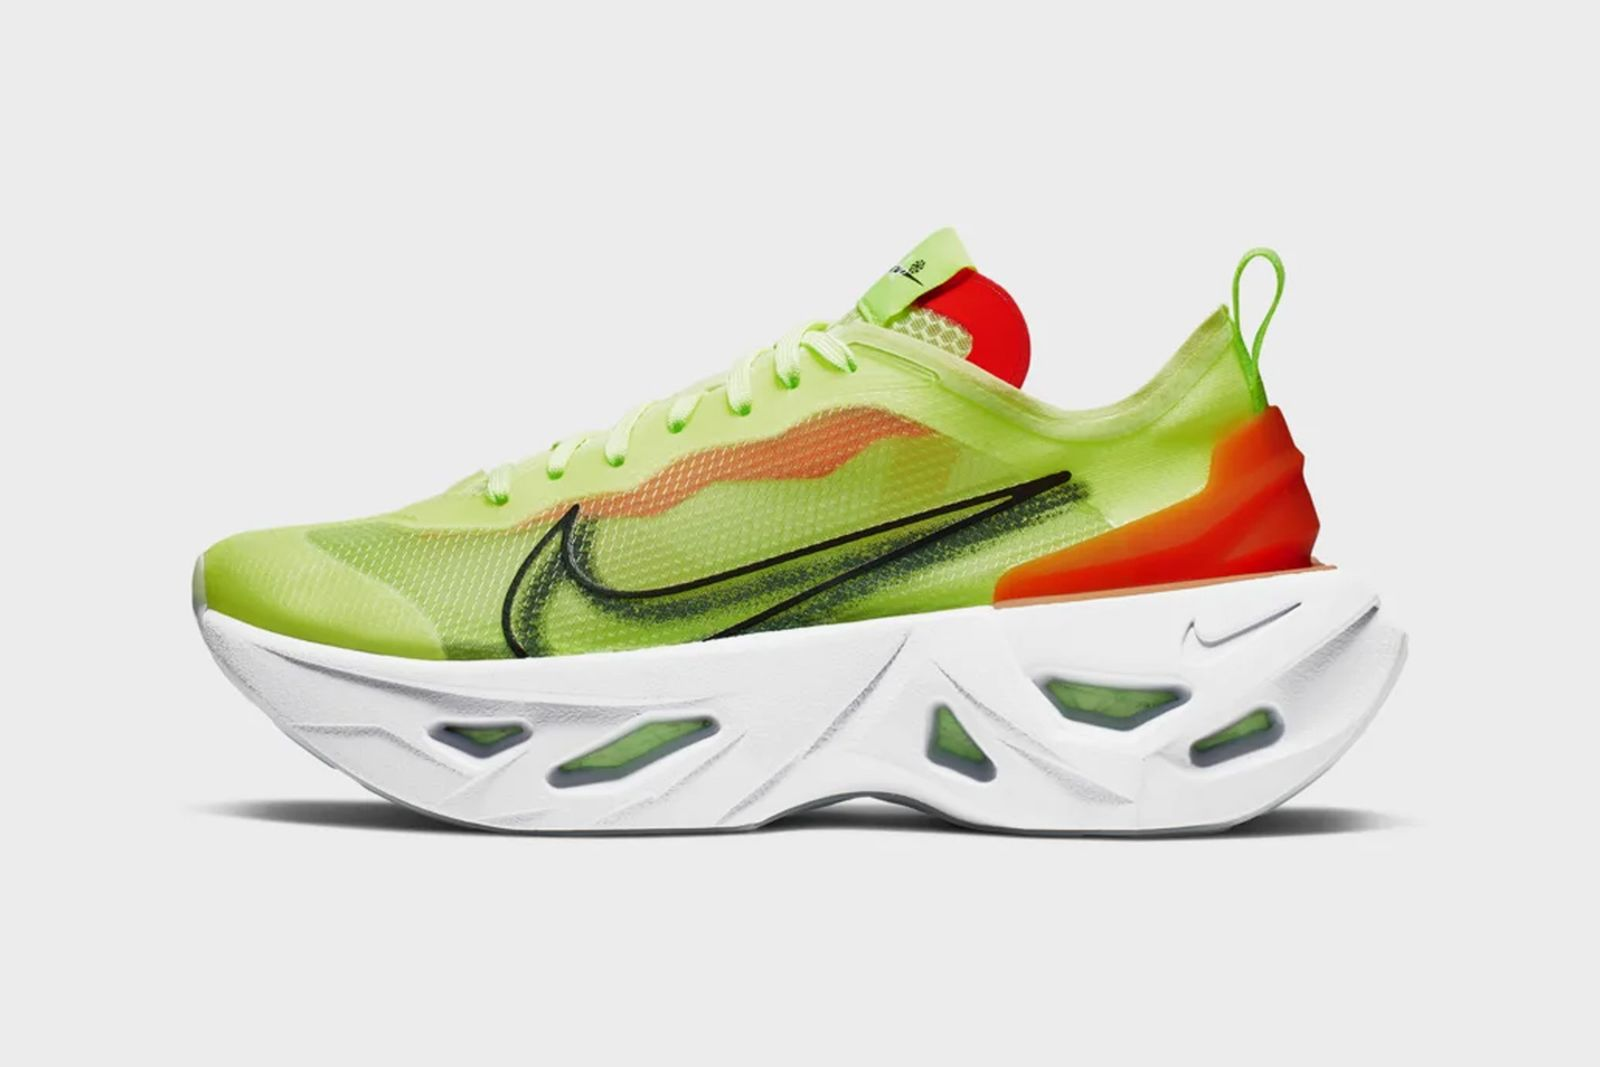 perspectiva misil Faringe  Nike Zoom X Vista Grind: Official Images & Where to Buy Tomorrow